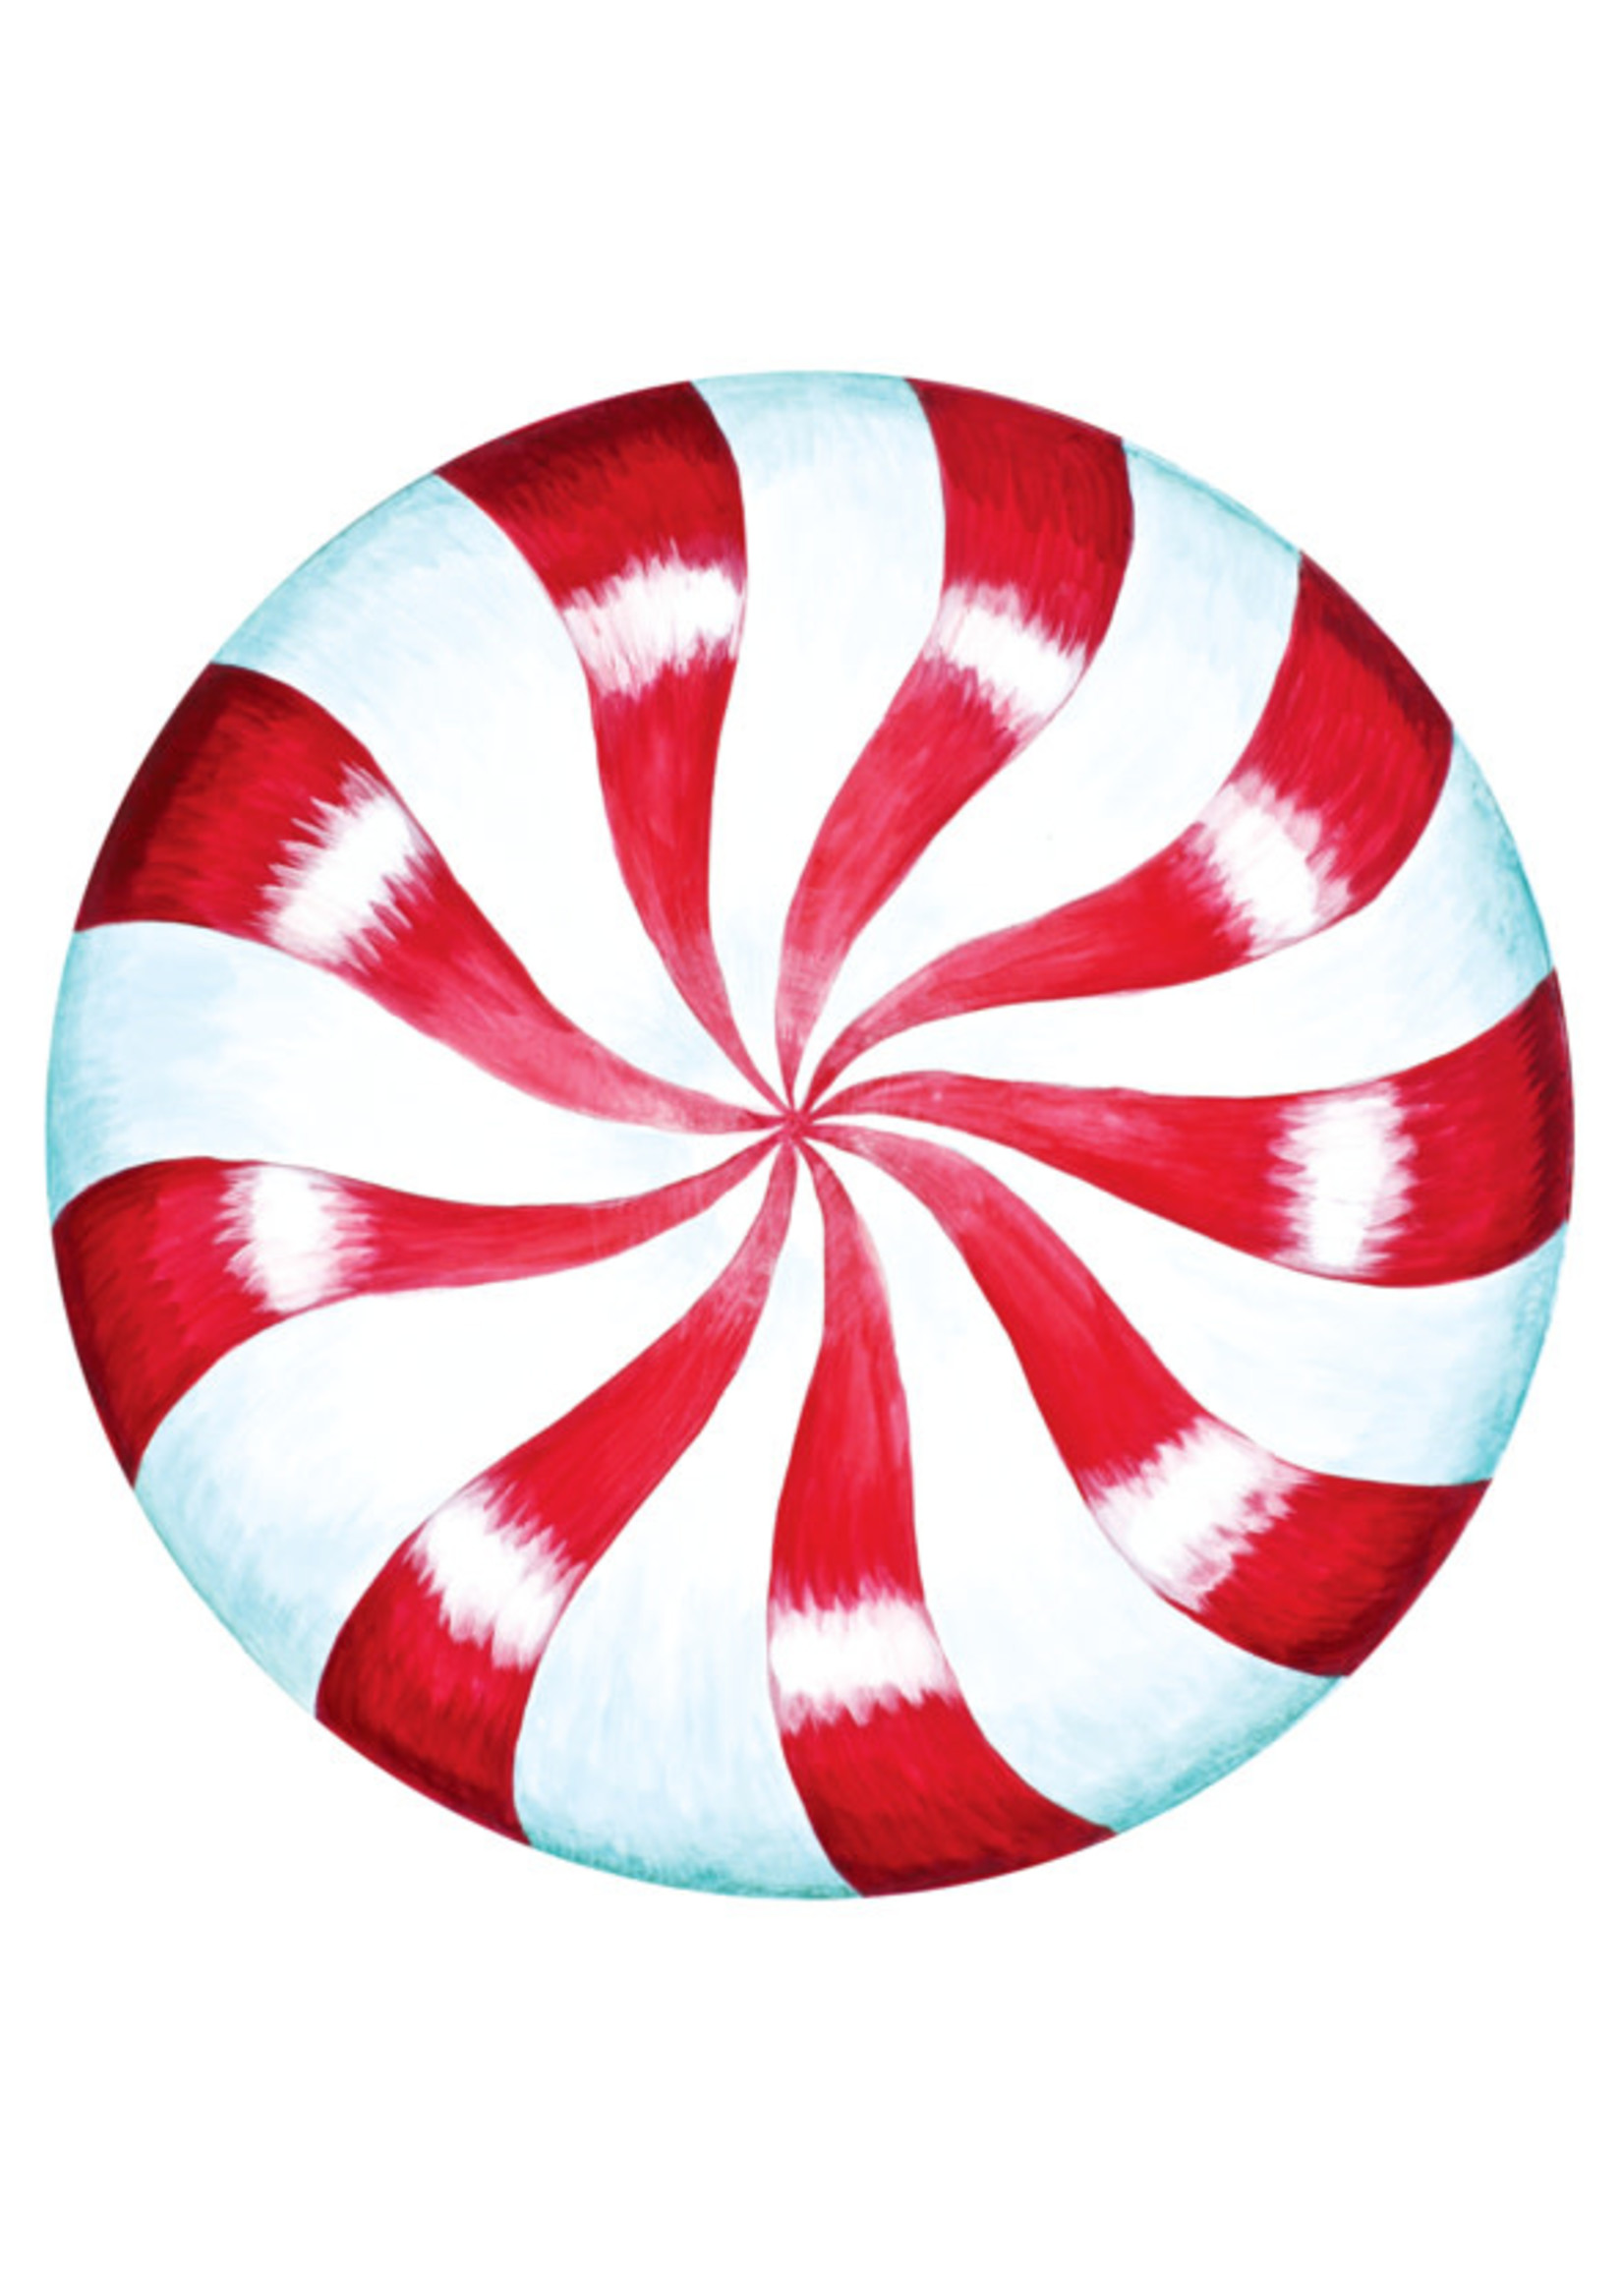 Hester & Cook Paper Placemats - Peppermint (12 sheets)